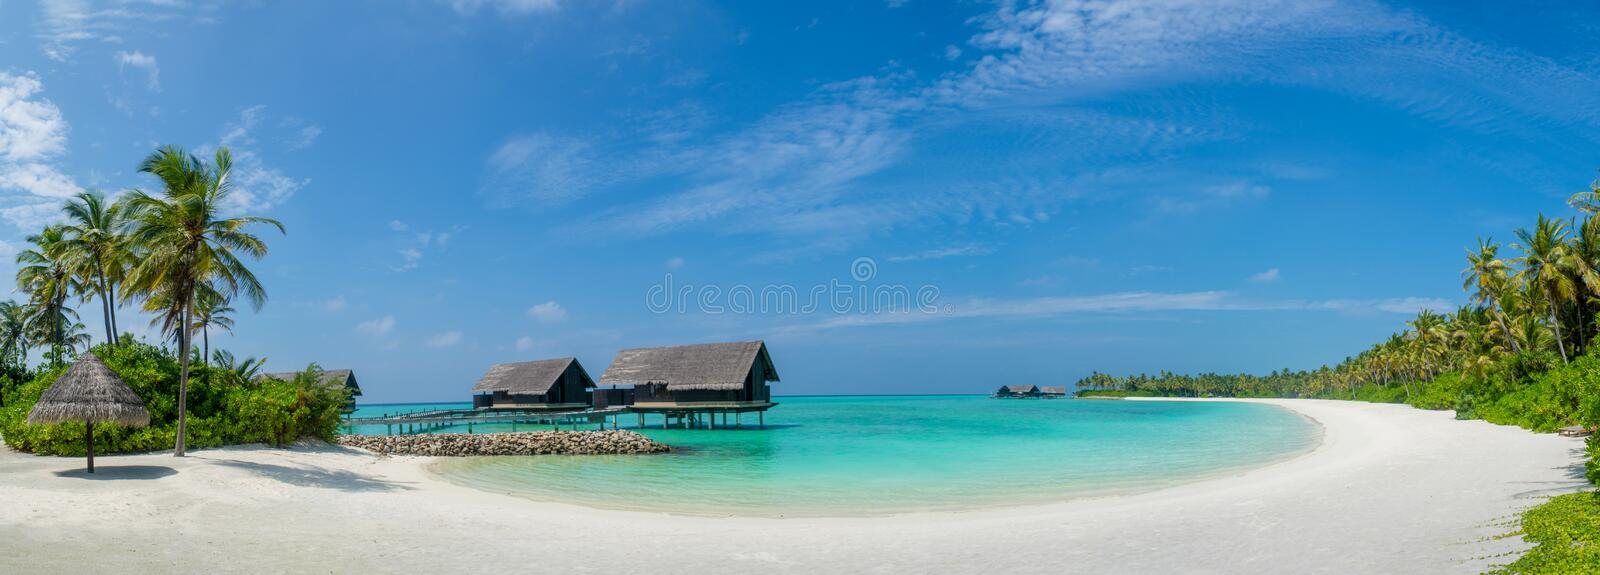 Maldives beach panorama view with blue ocean and sky near villas royalty free stock photography